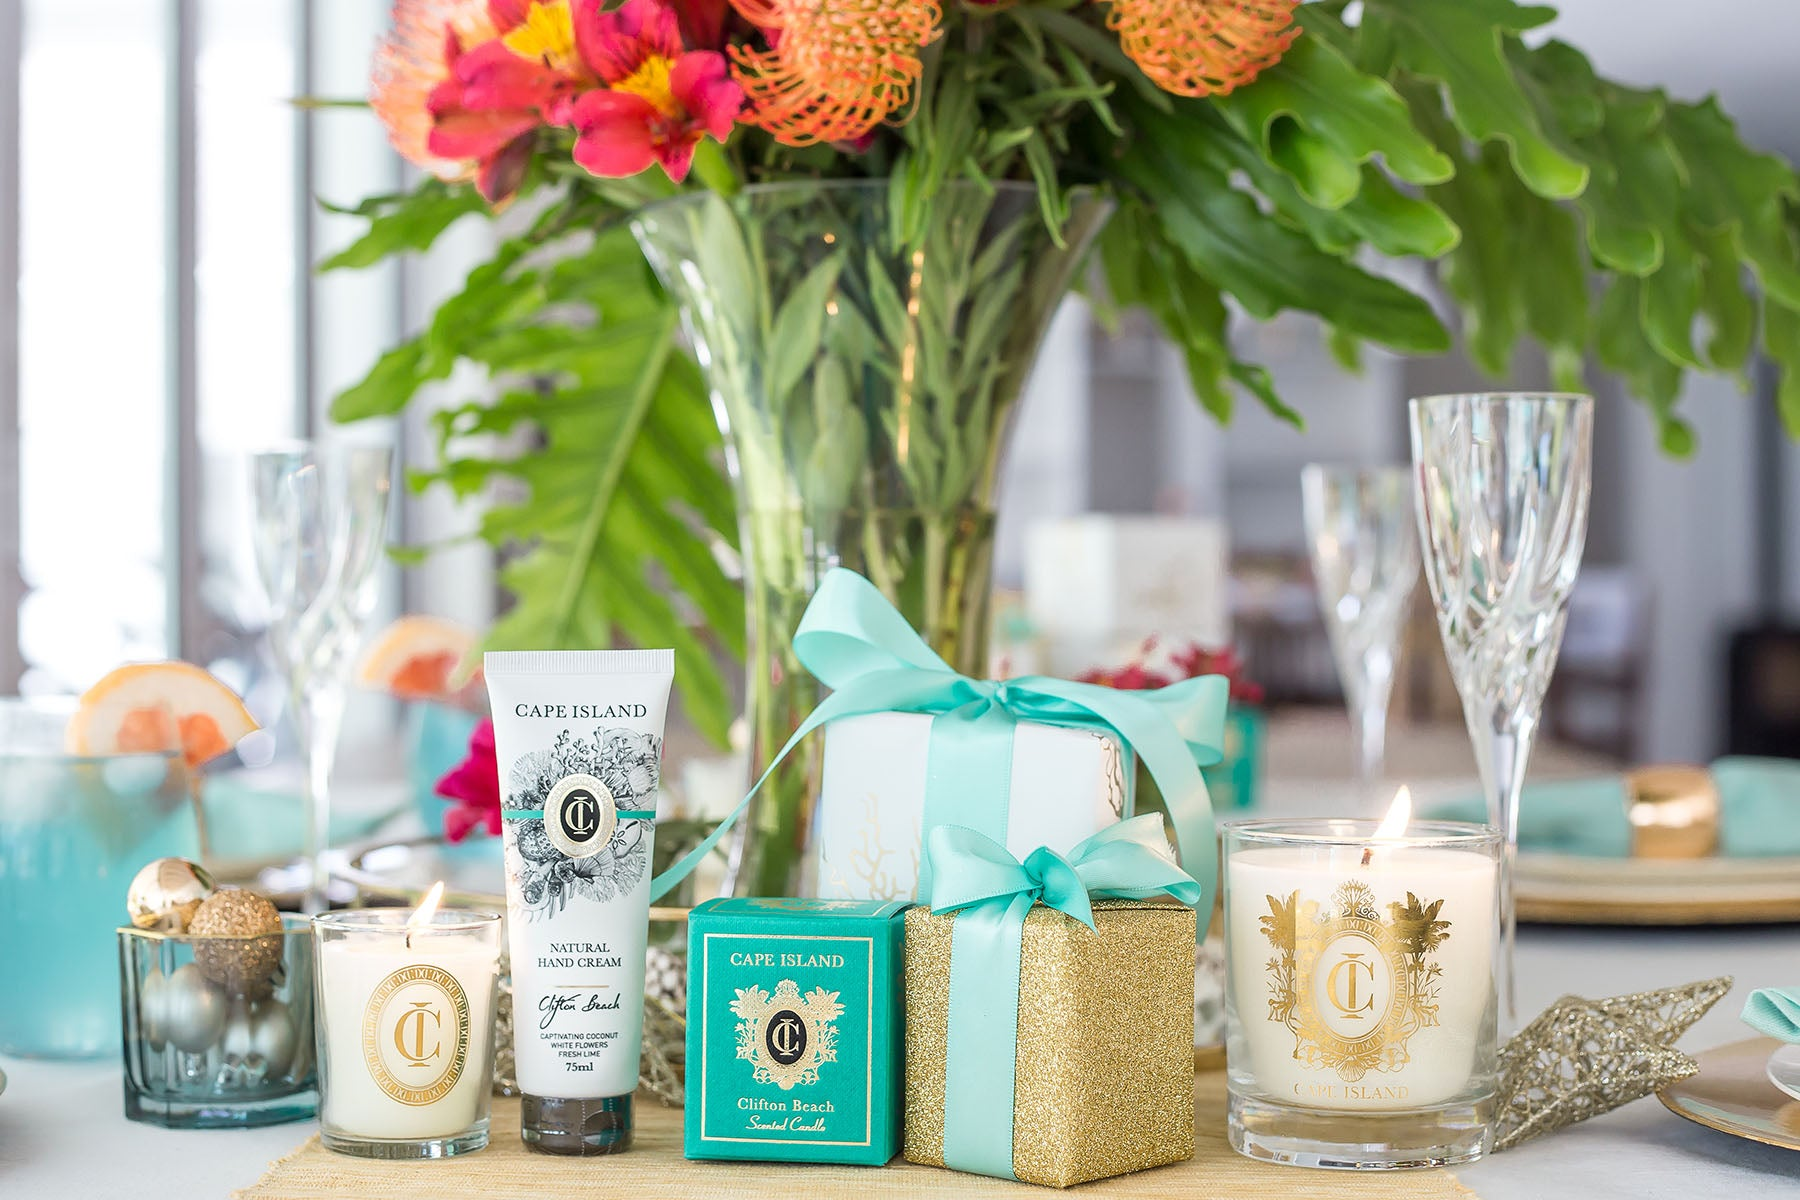 The Cape Island Clifton Beach candles. Cape Island luxury candles, soap products and home fragrances are available at Sarza home goods and furniture store in Rye New York.